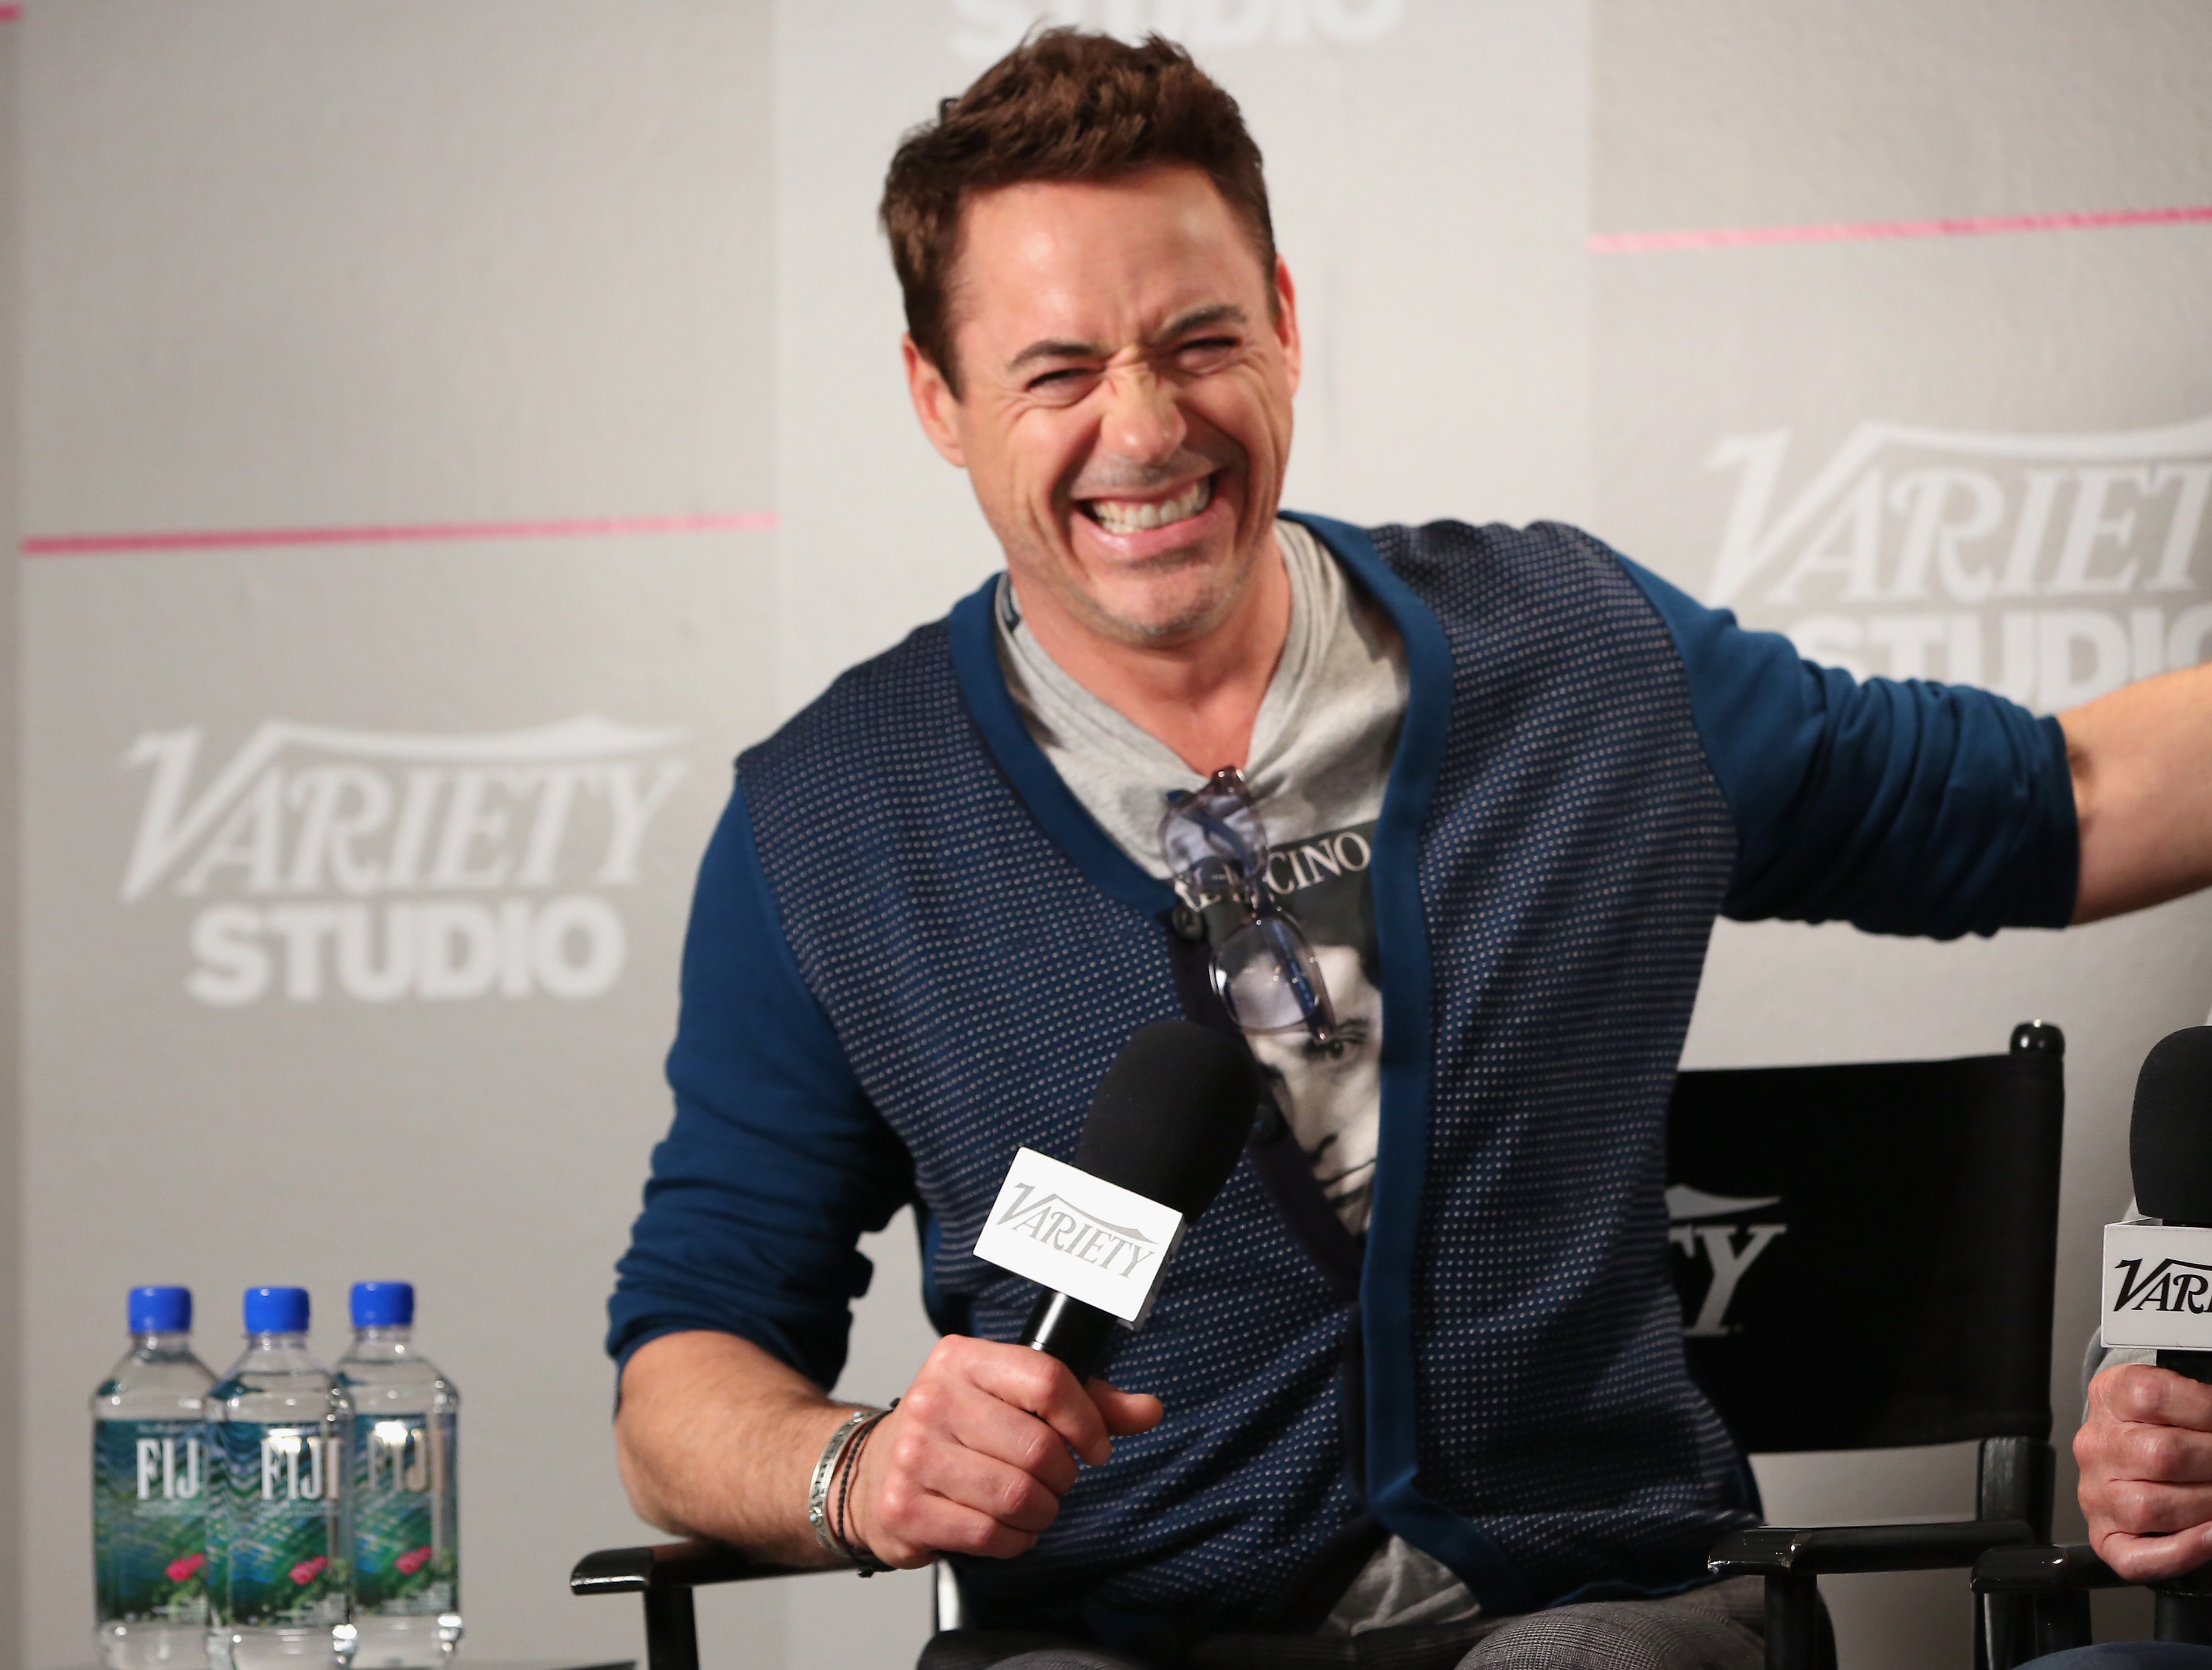 Actor Robert Downey Jr. attends day 2 of the Variety Studio presented by Moroccanoil at Holt Renfrew during the 2014 Toronto International Film Festival.